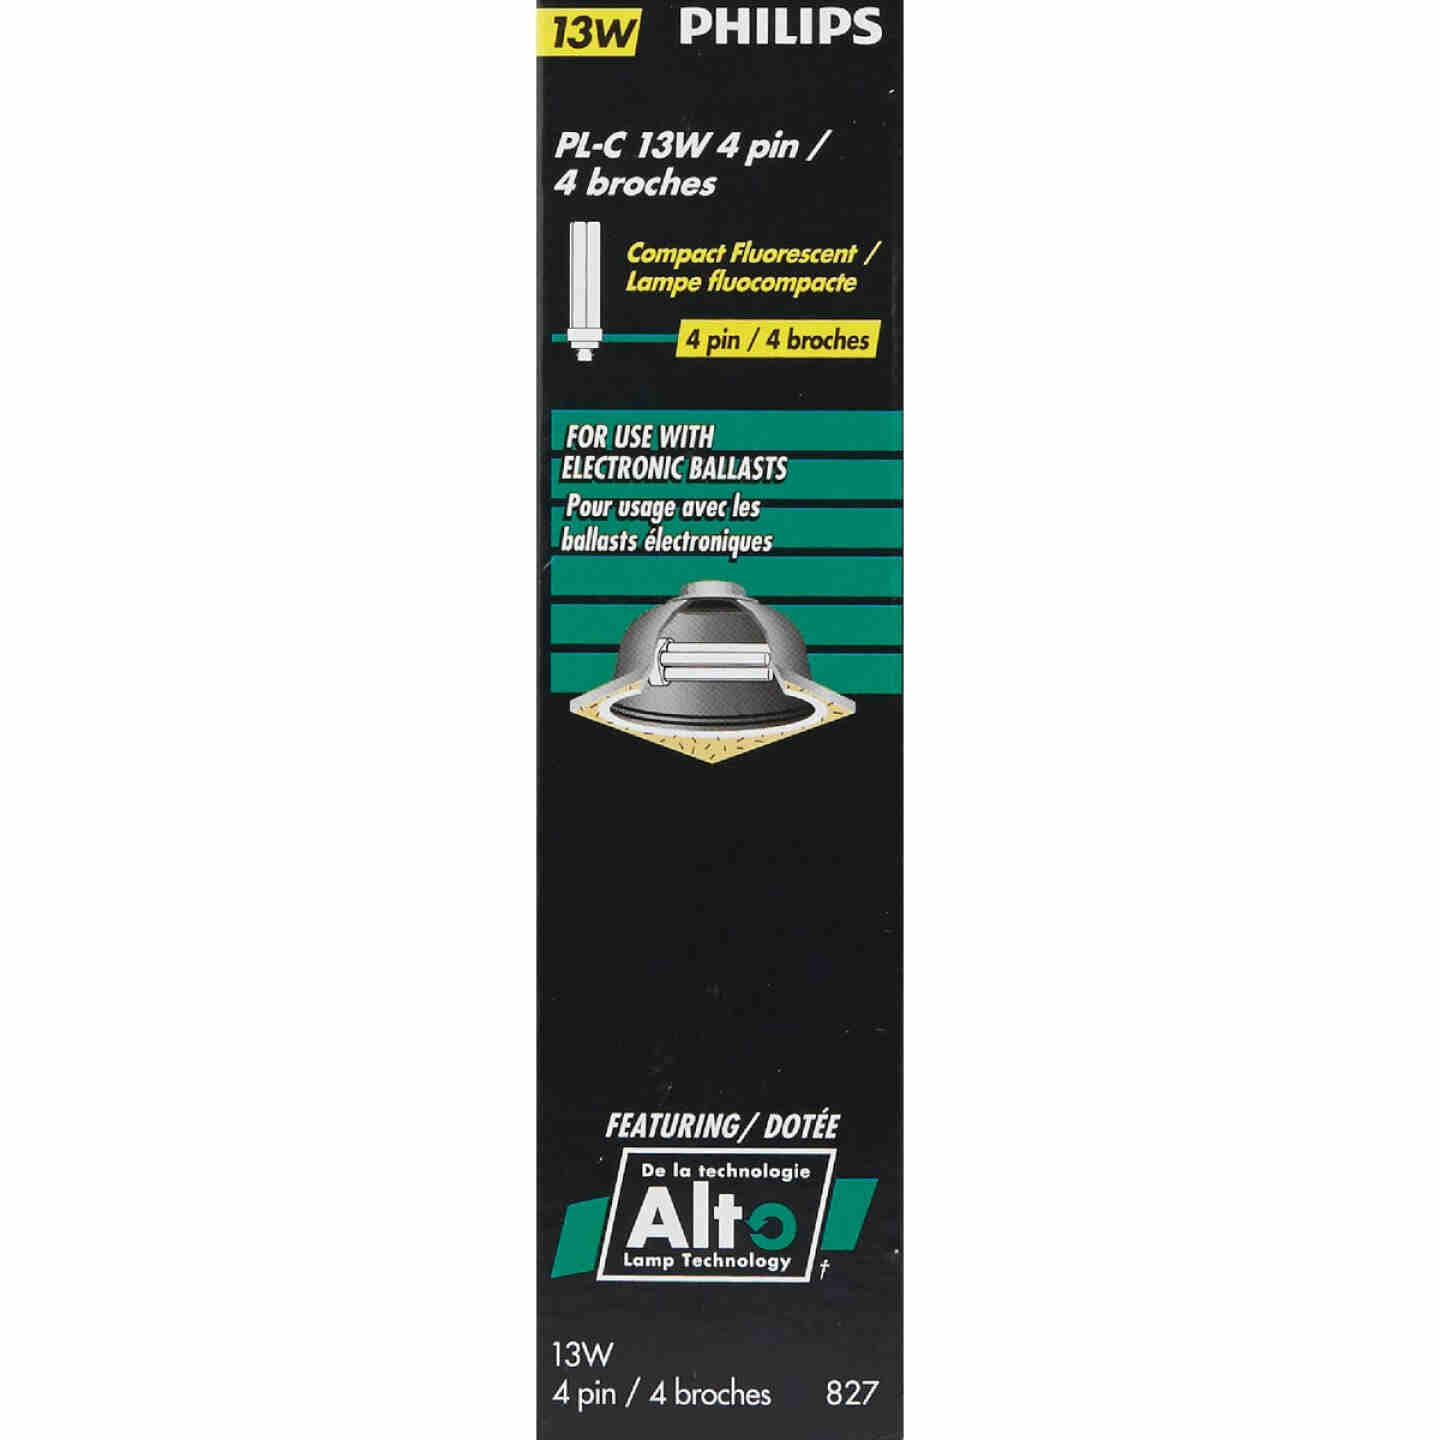 Philips 60W Equivalent Soft White G24Q-1 Base PL-C CFL Light Bulb Image 2